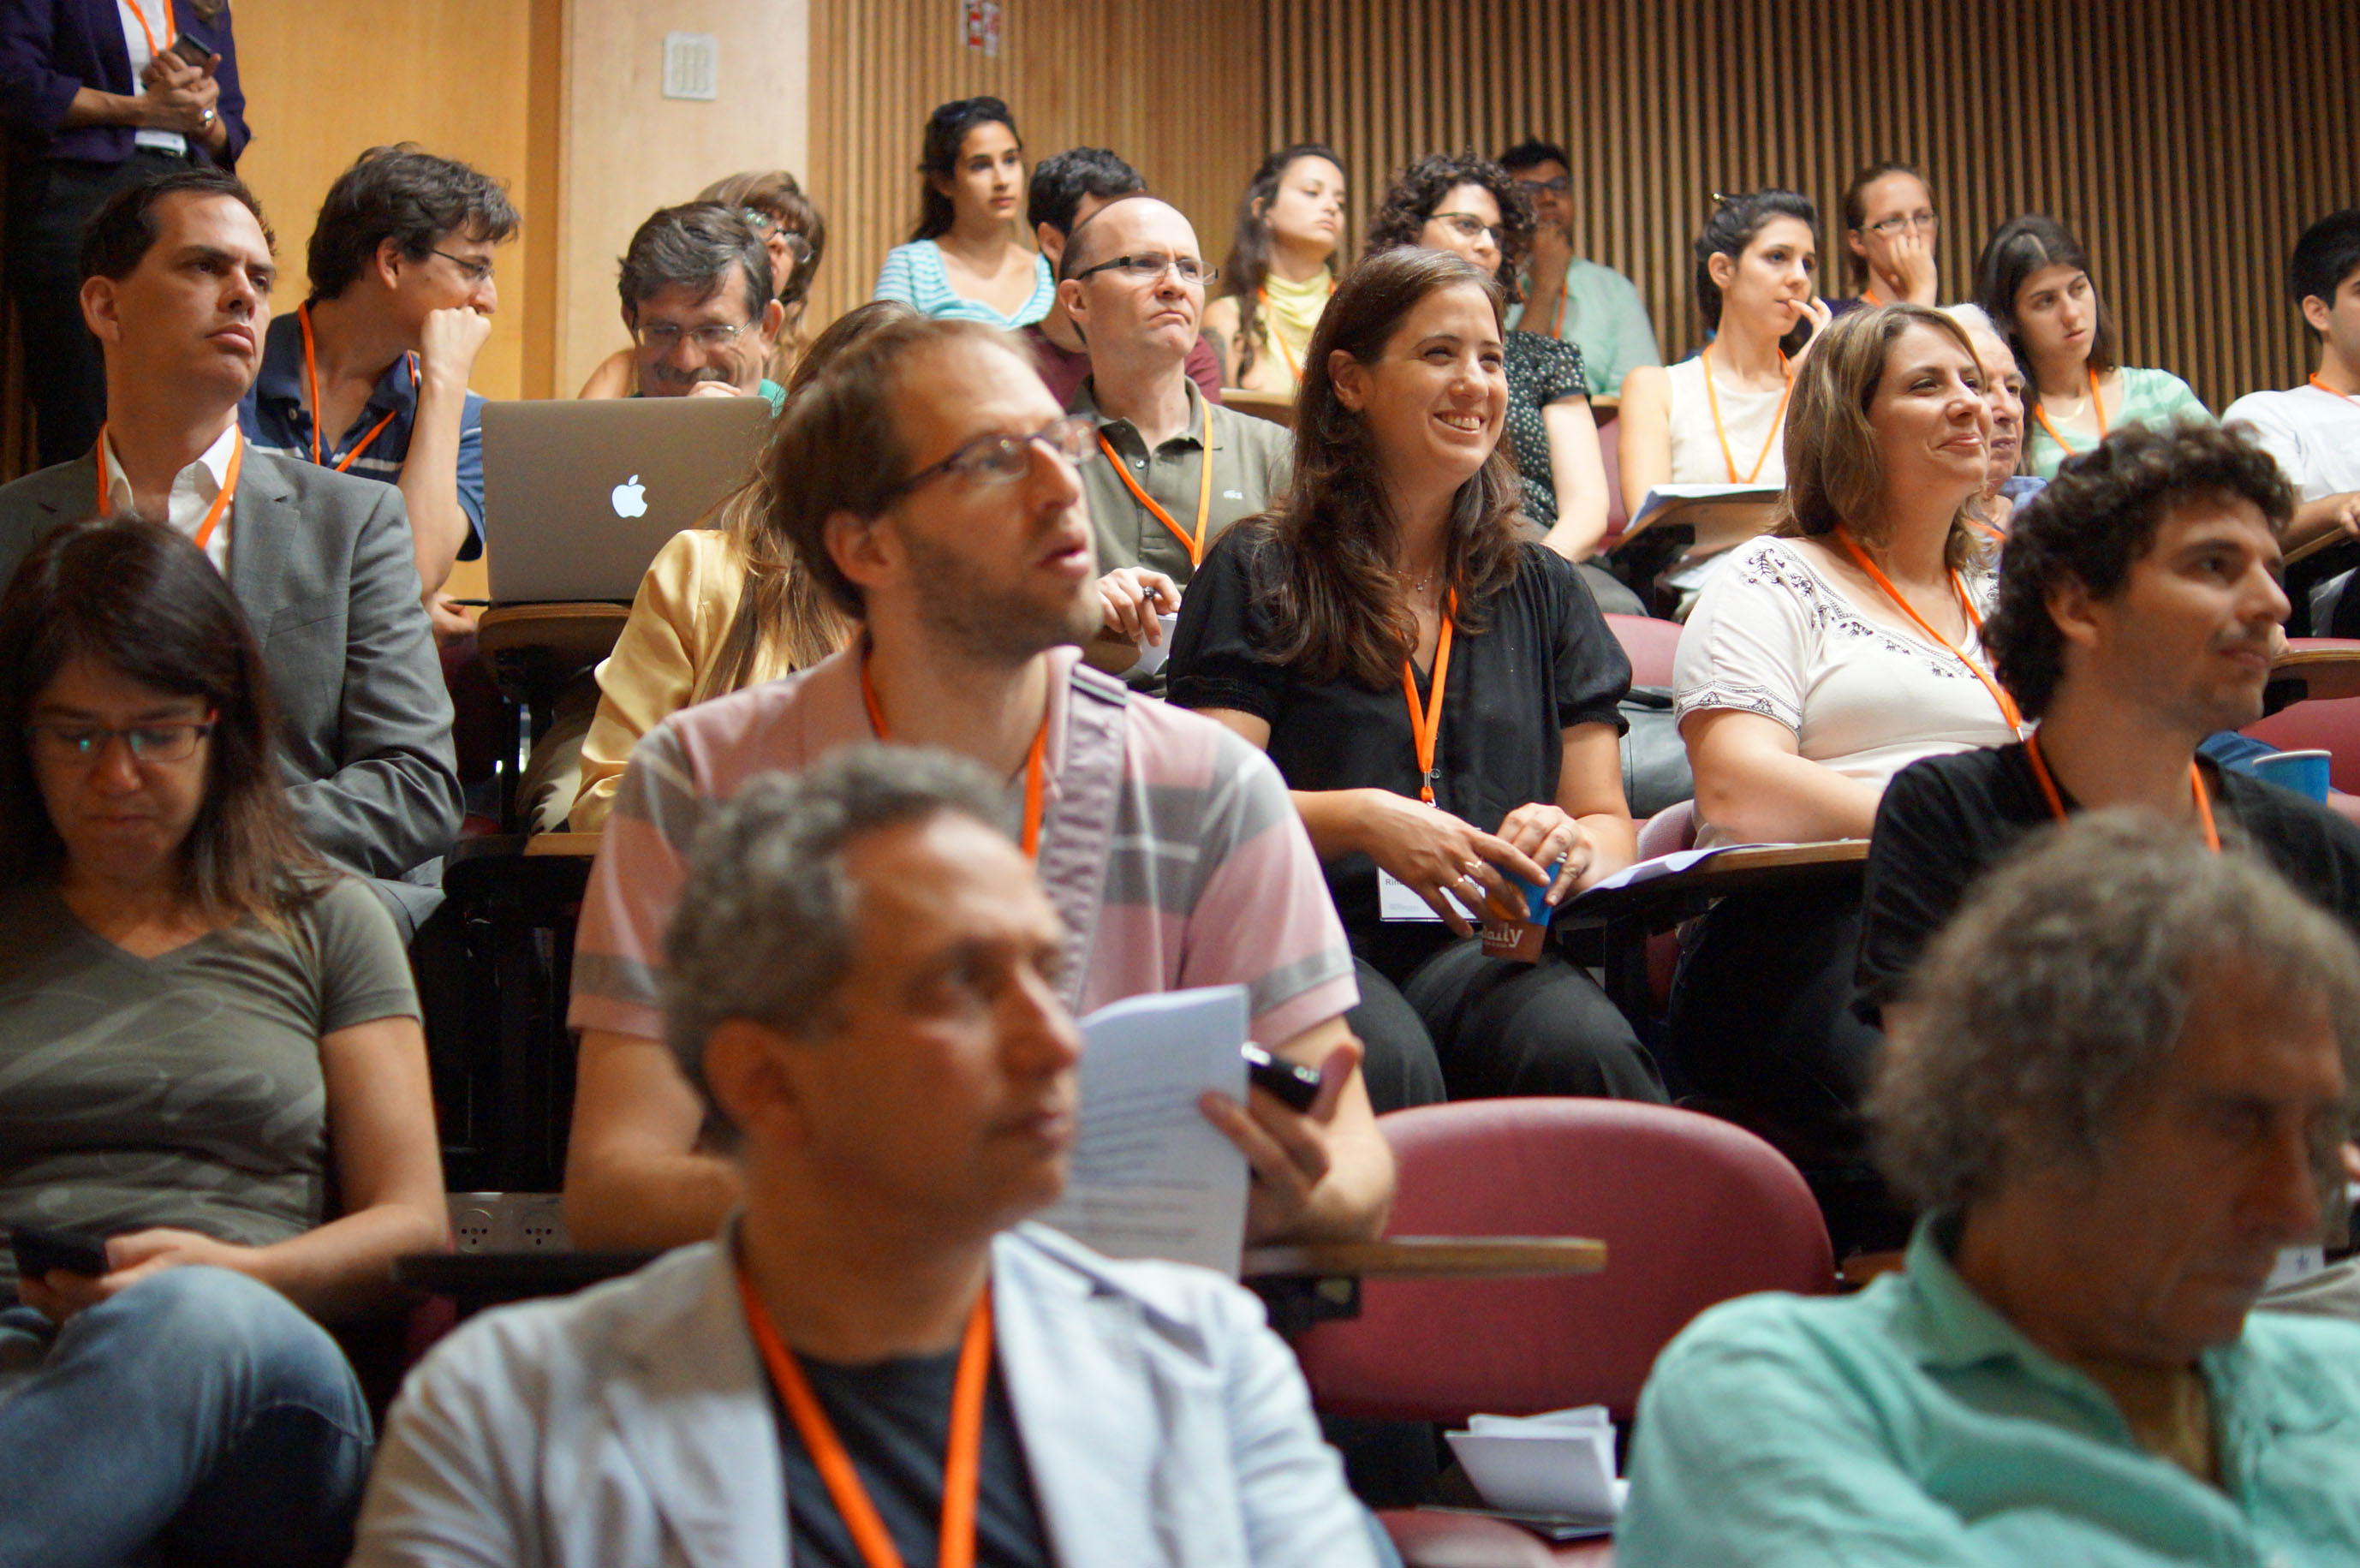 Audience first day 3.JPG - Audience